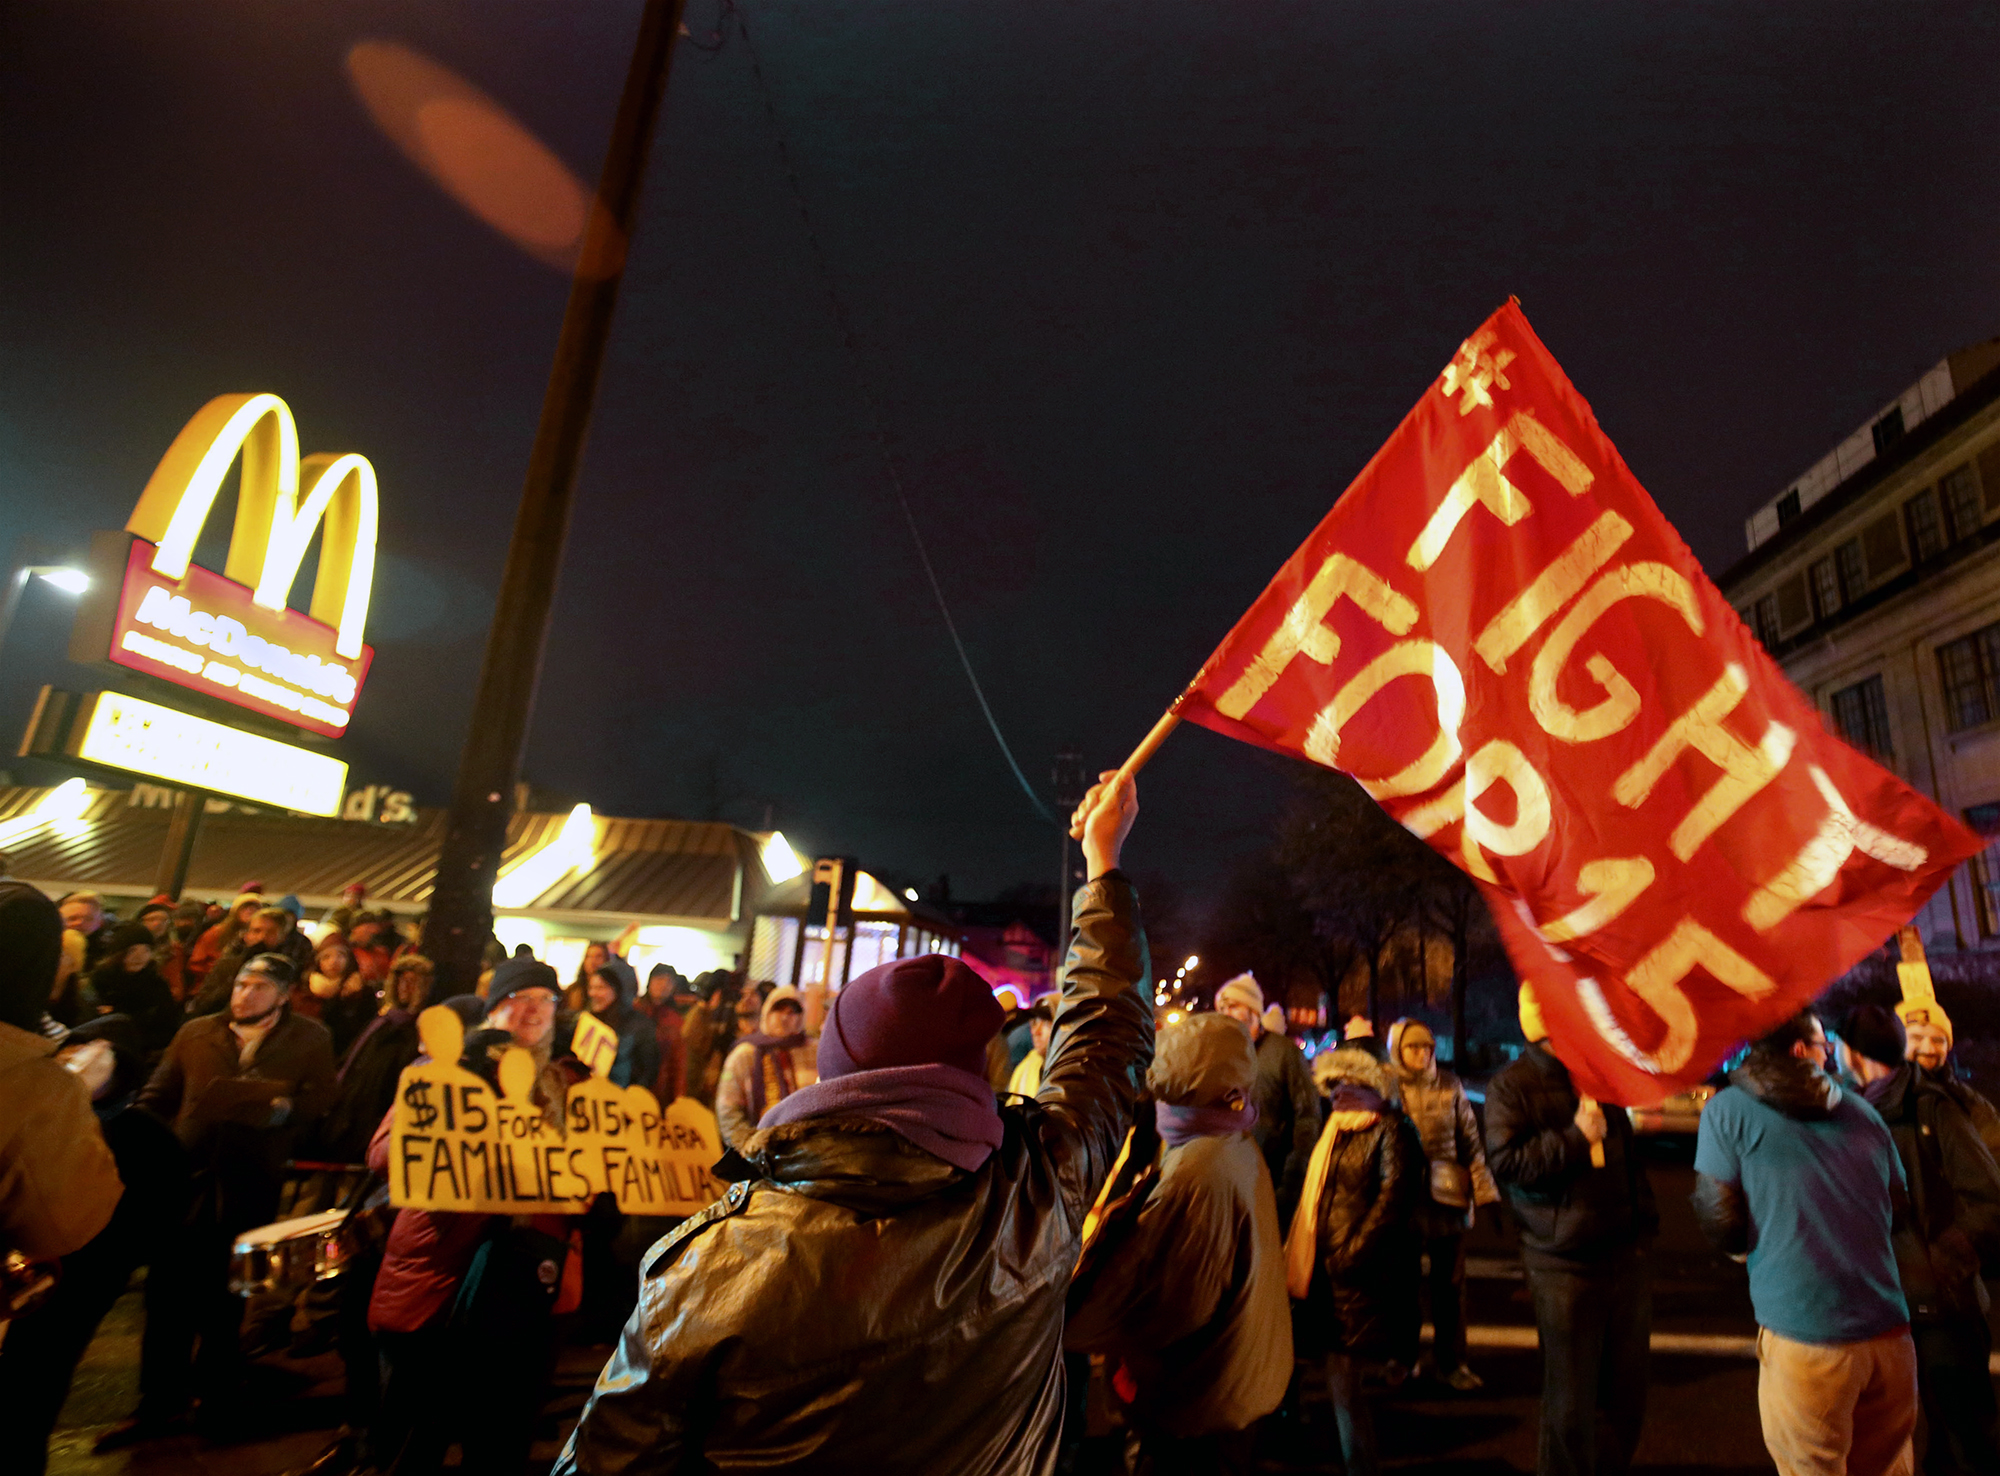 Kansas City McDonald's workers to join nationwide protest on sexual harassment